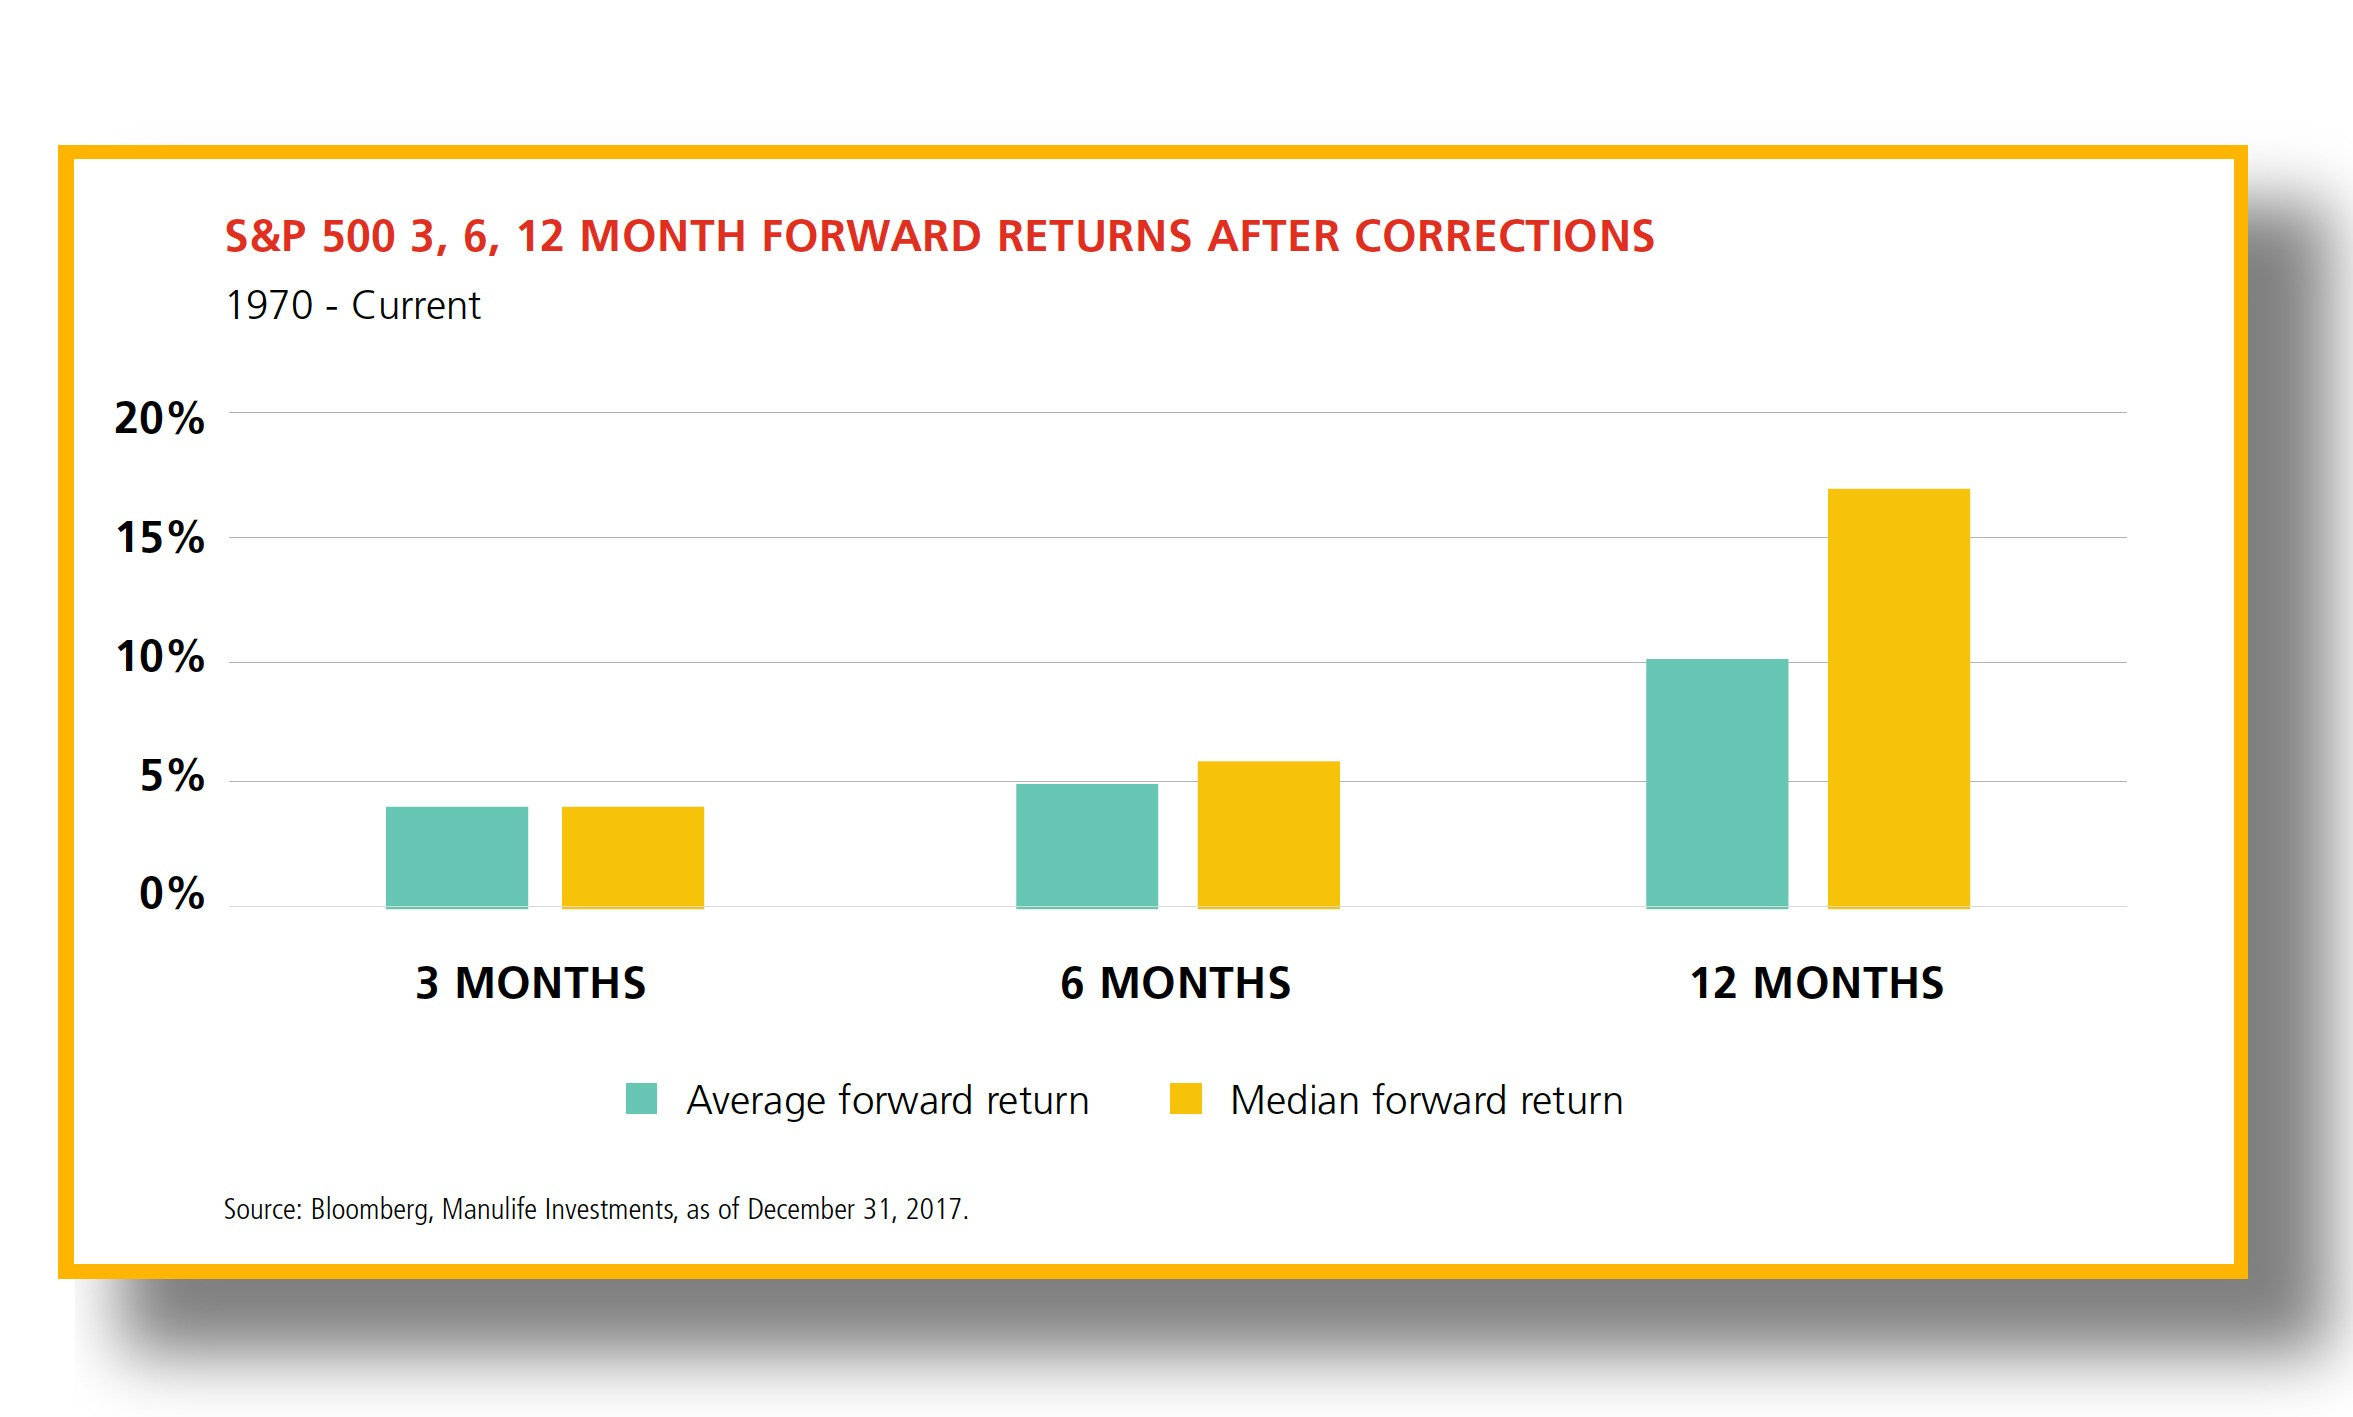 3, 6 and 12 month forward returns after corrections